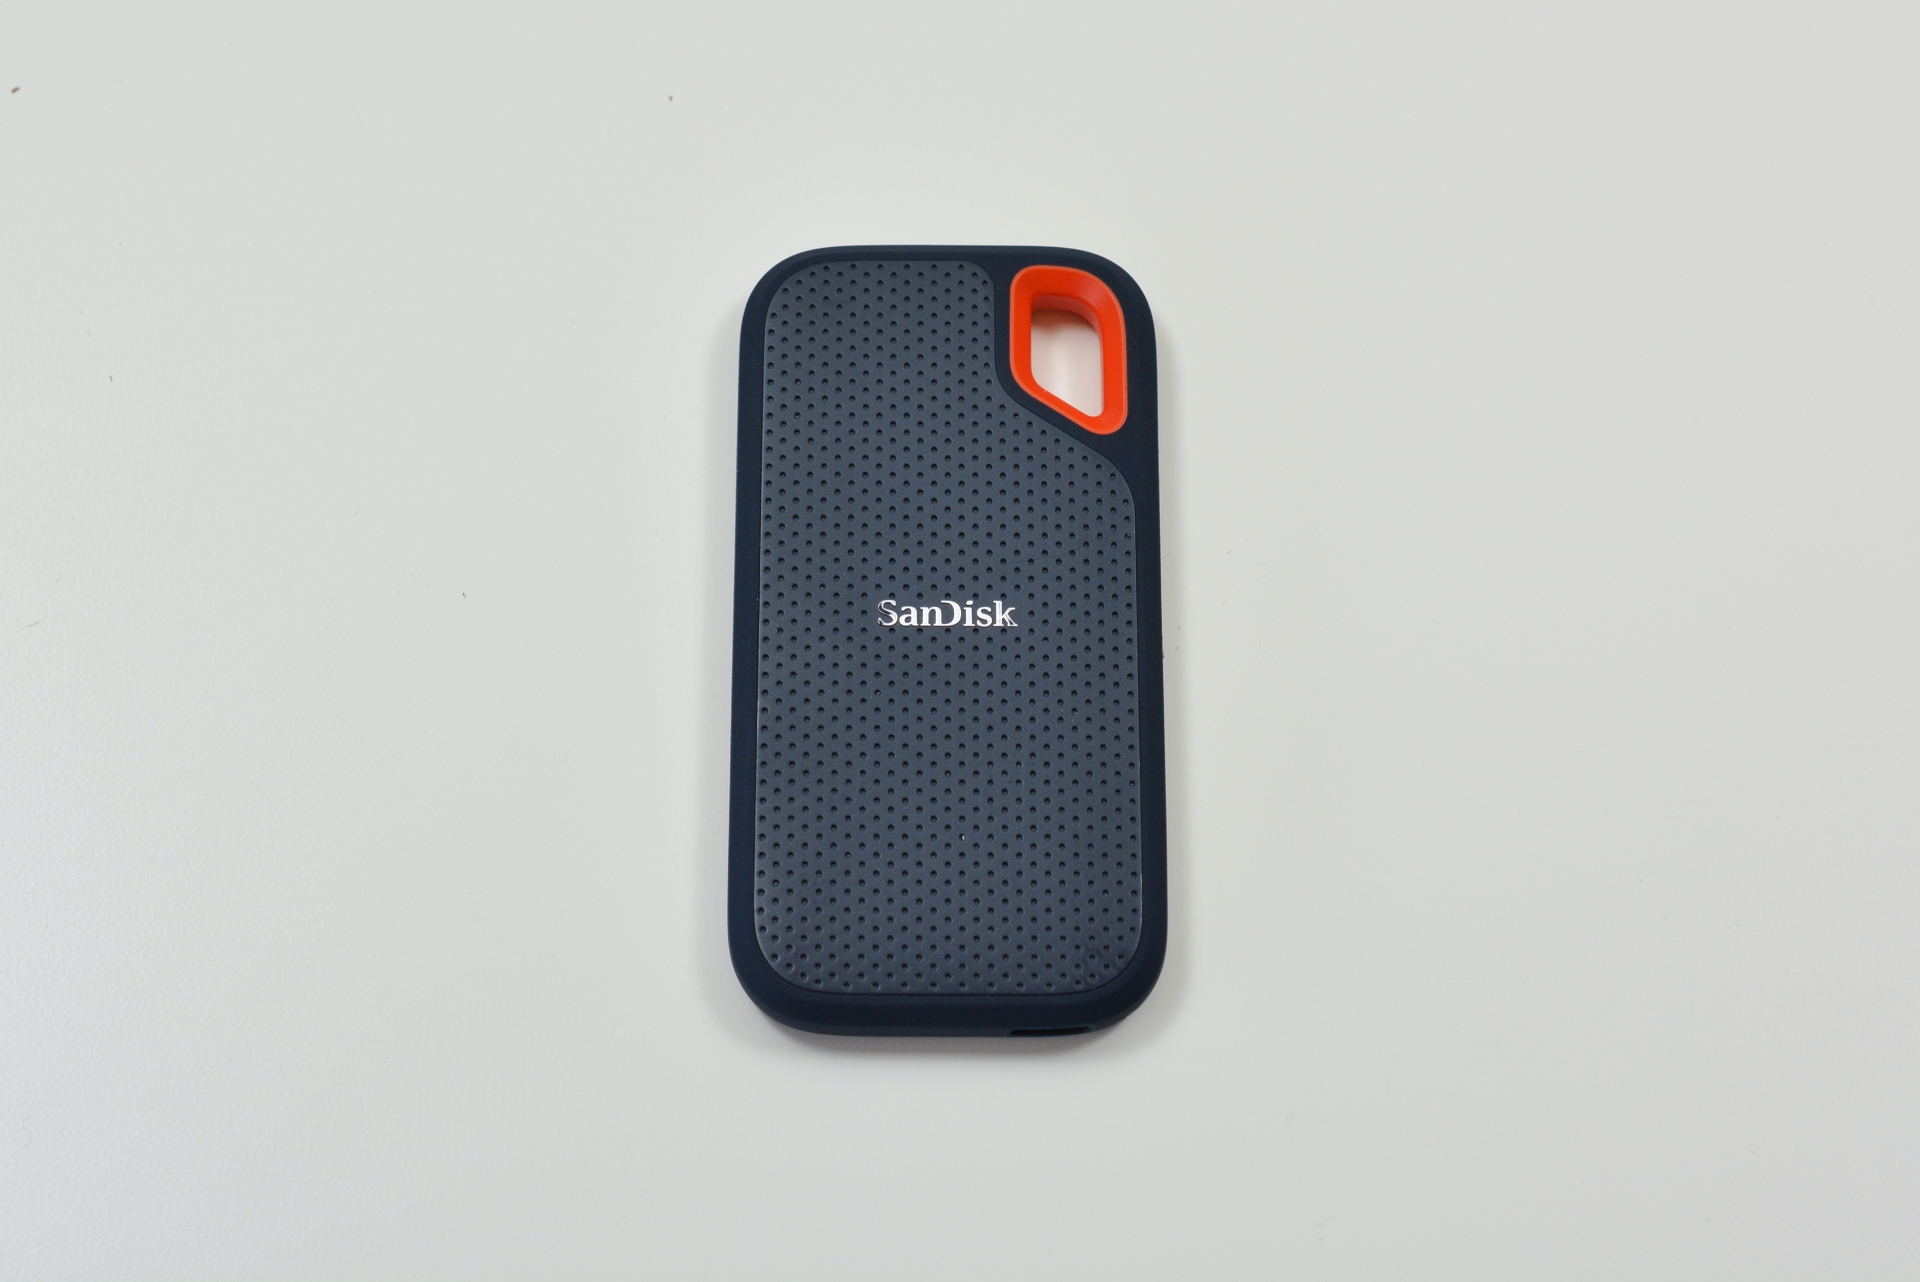 The SanDisk Extreme is a recommended portable SSD.